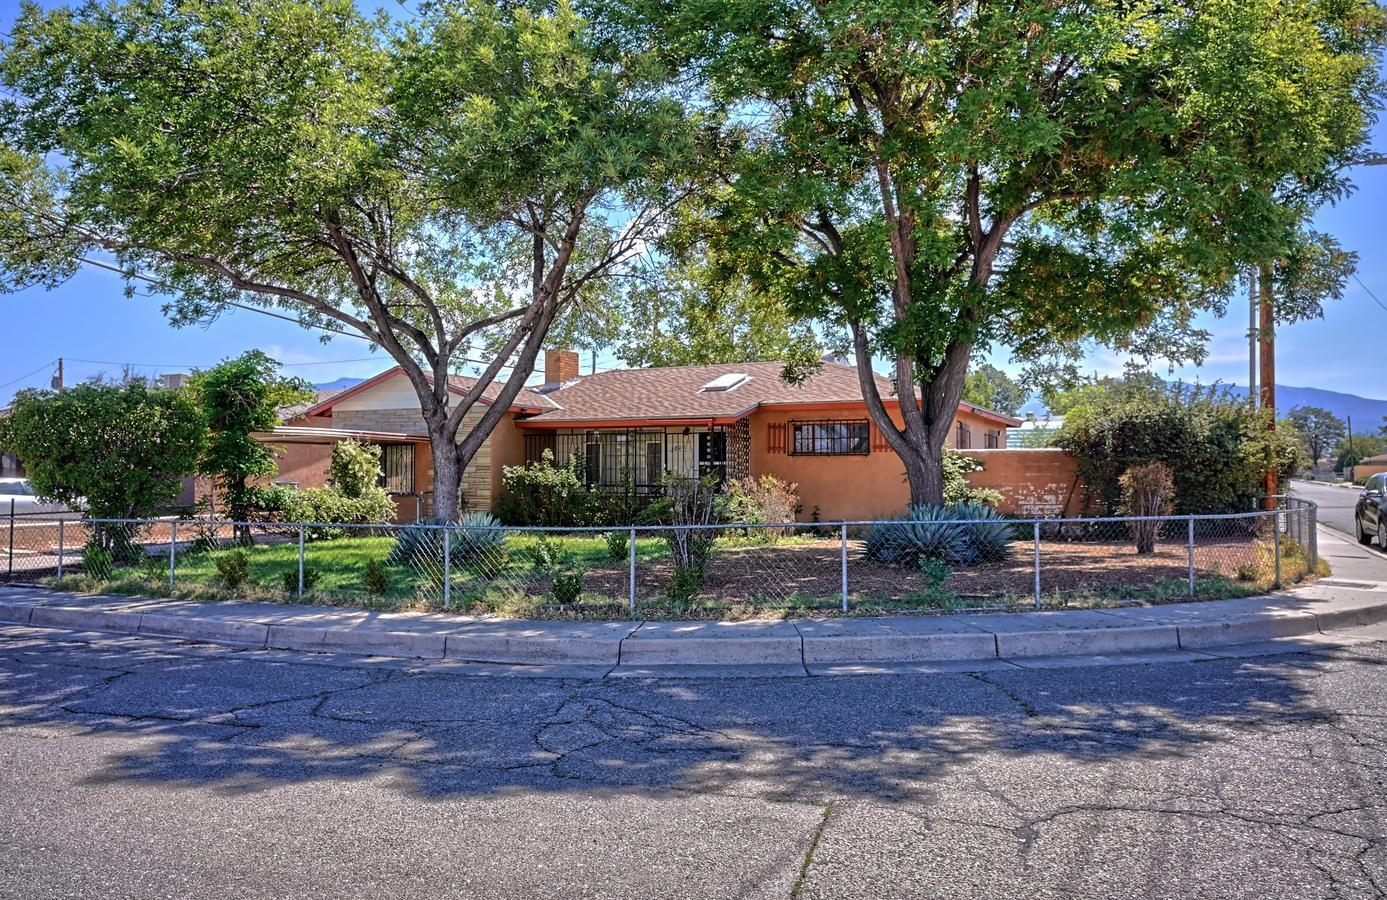 This charming home features original hard wood flooring, a wood burning fireplace, two recently replaced evaporative coolers, and a bonus living area.  The oversize lot features mature rose bushes large shade trees and grass. Centrally located home near malls, dining, health care and recreations. Two minute drive to Interstate 40.  Sewer line replaced in 2015. Recently stuccoed.